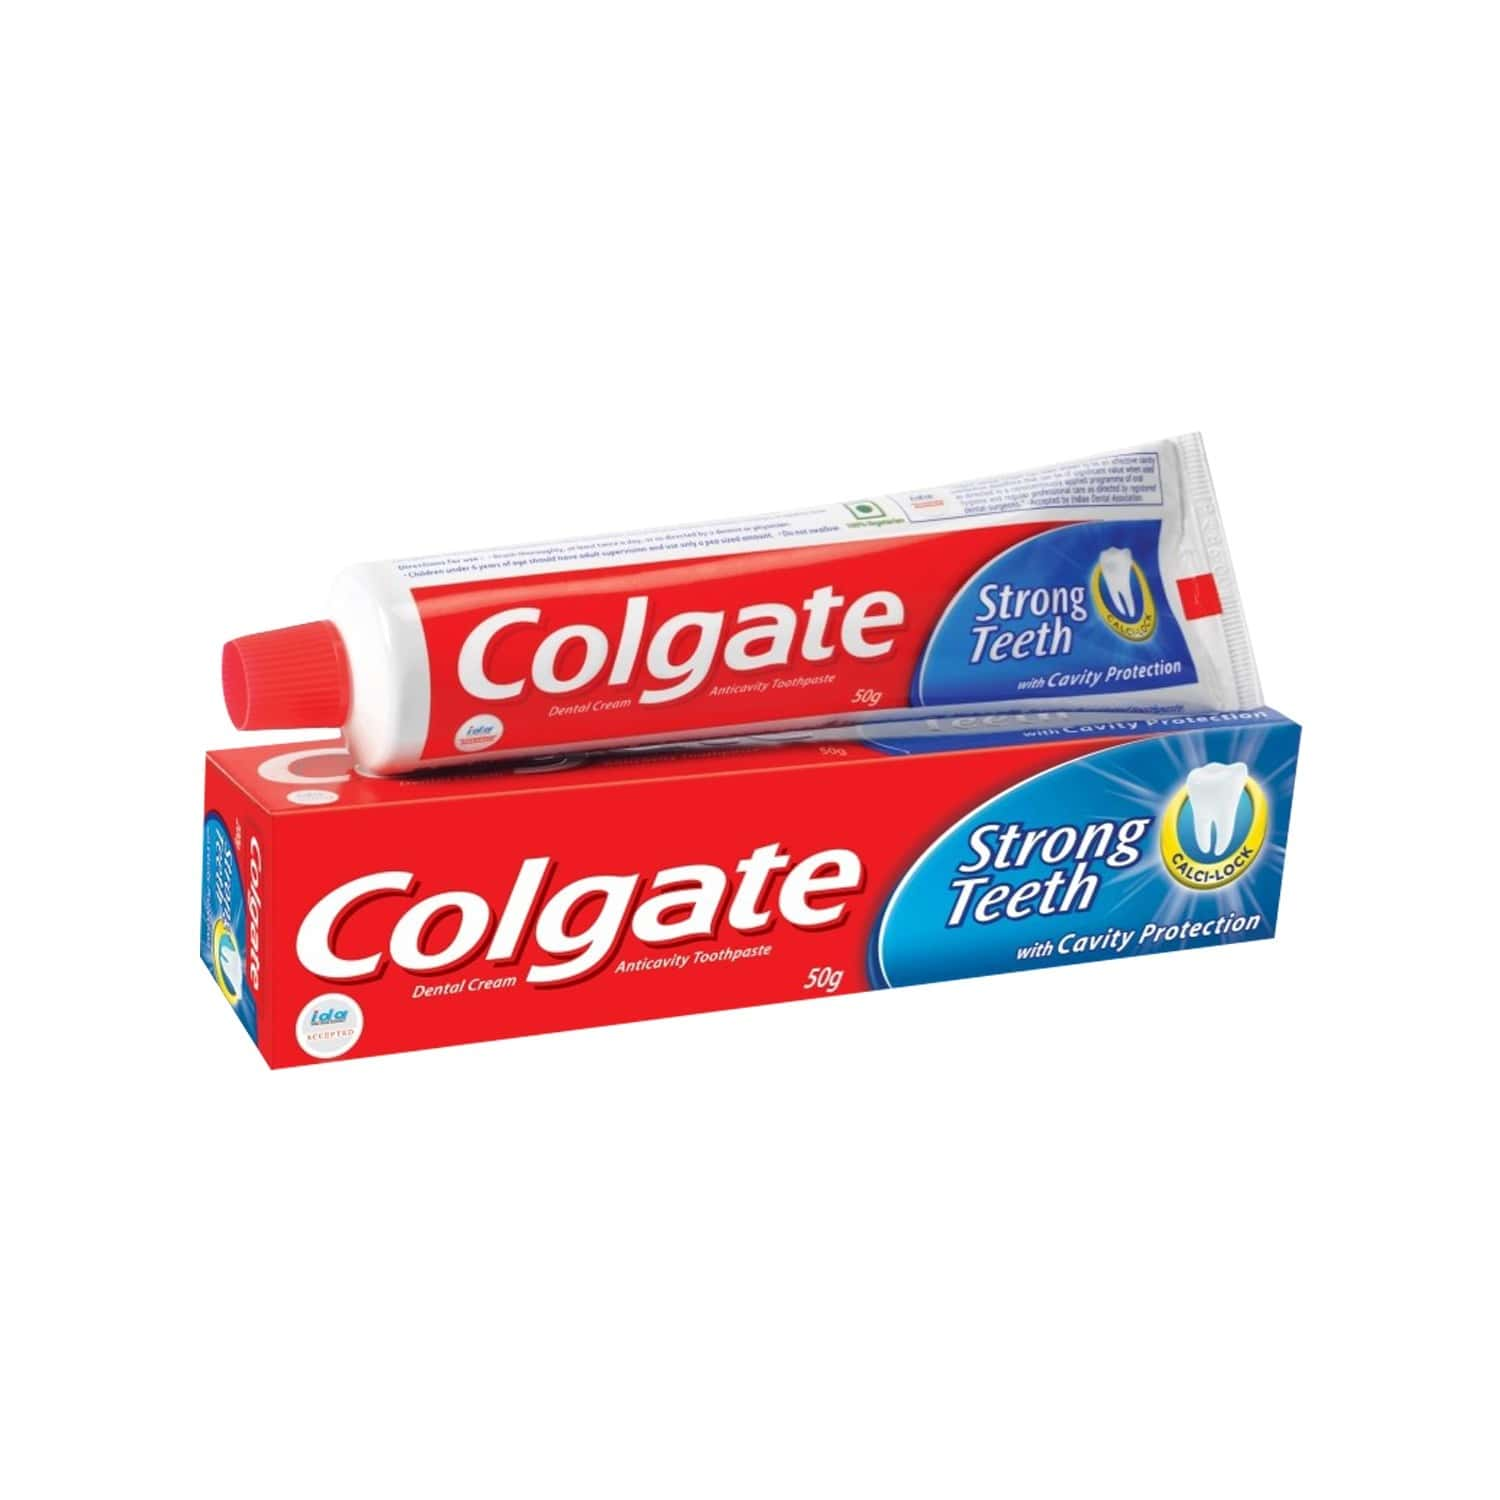 Colgate Toothpaste - Strong Teeth Dental Cream - 54 Gm - Anti-cavity